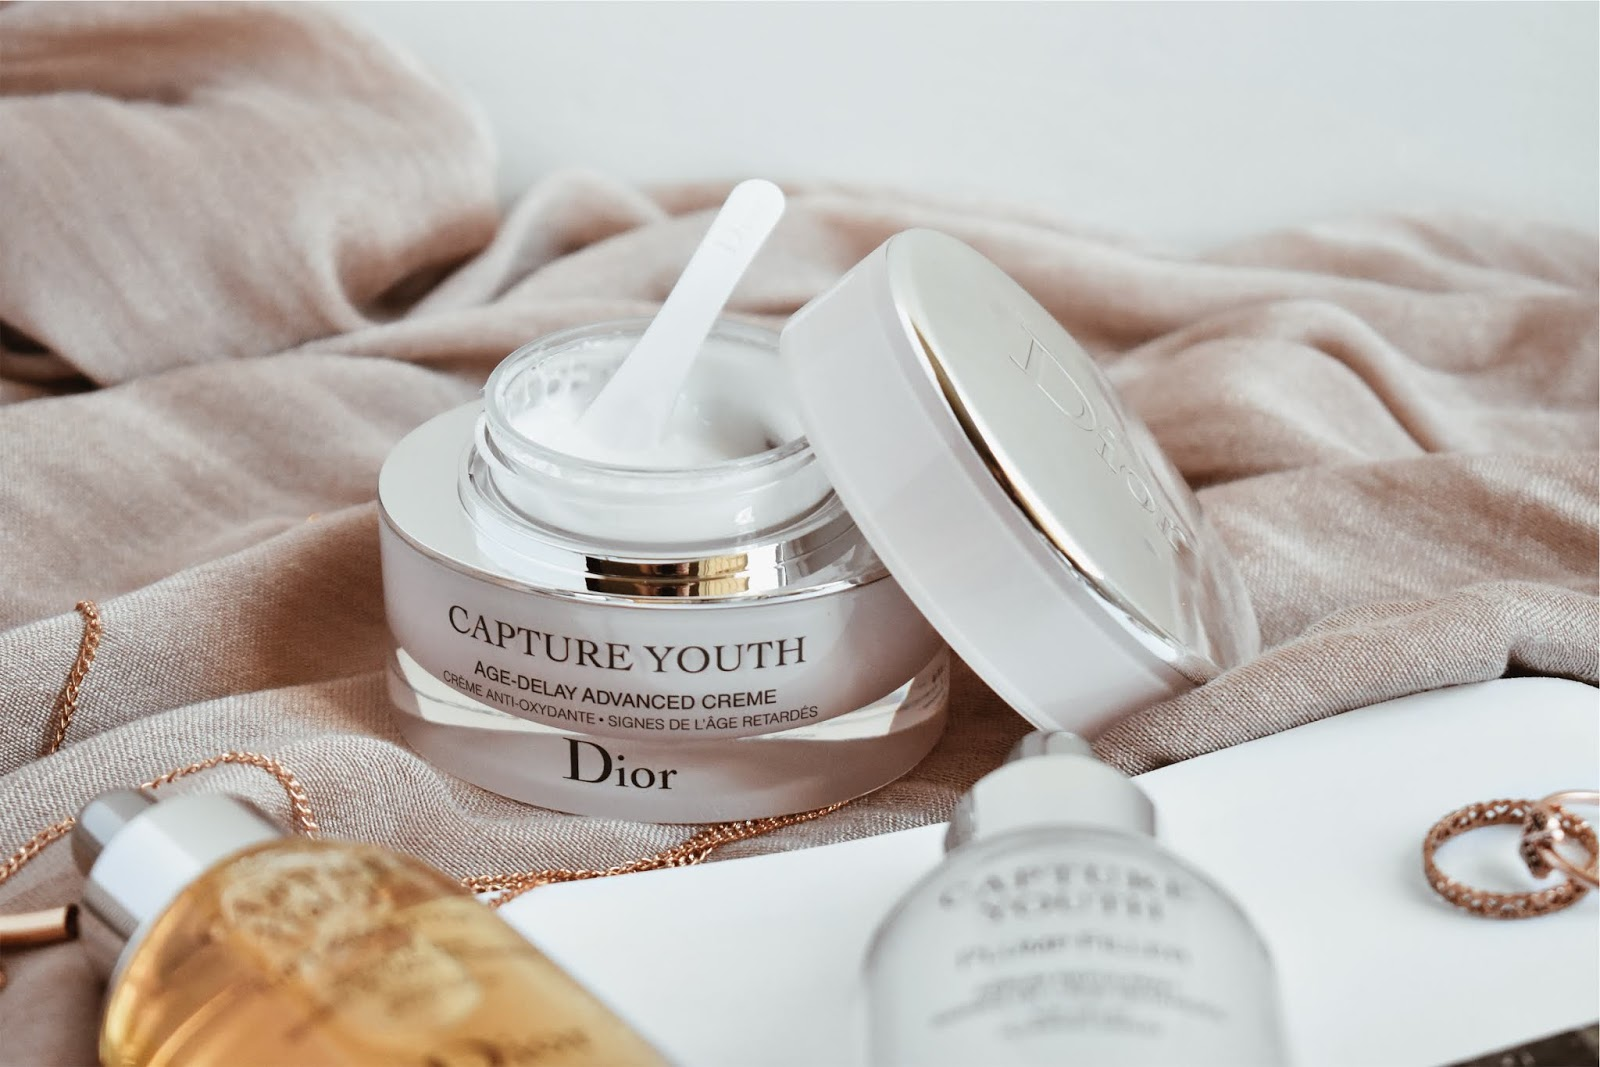 dior capture youth creme serum lift sculpt plump skincare beauty blogger mexicana belleza cuidado de piel mexico makeup 3